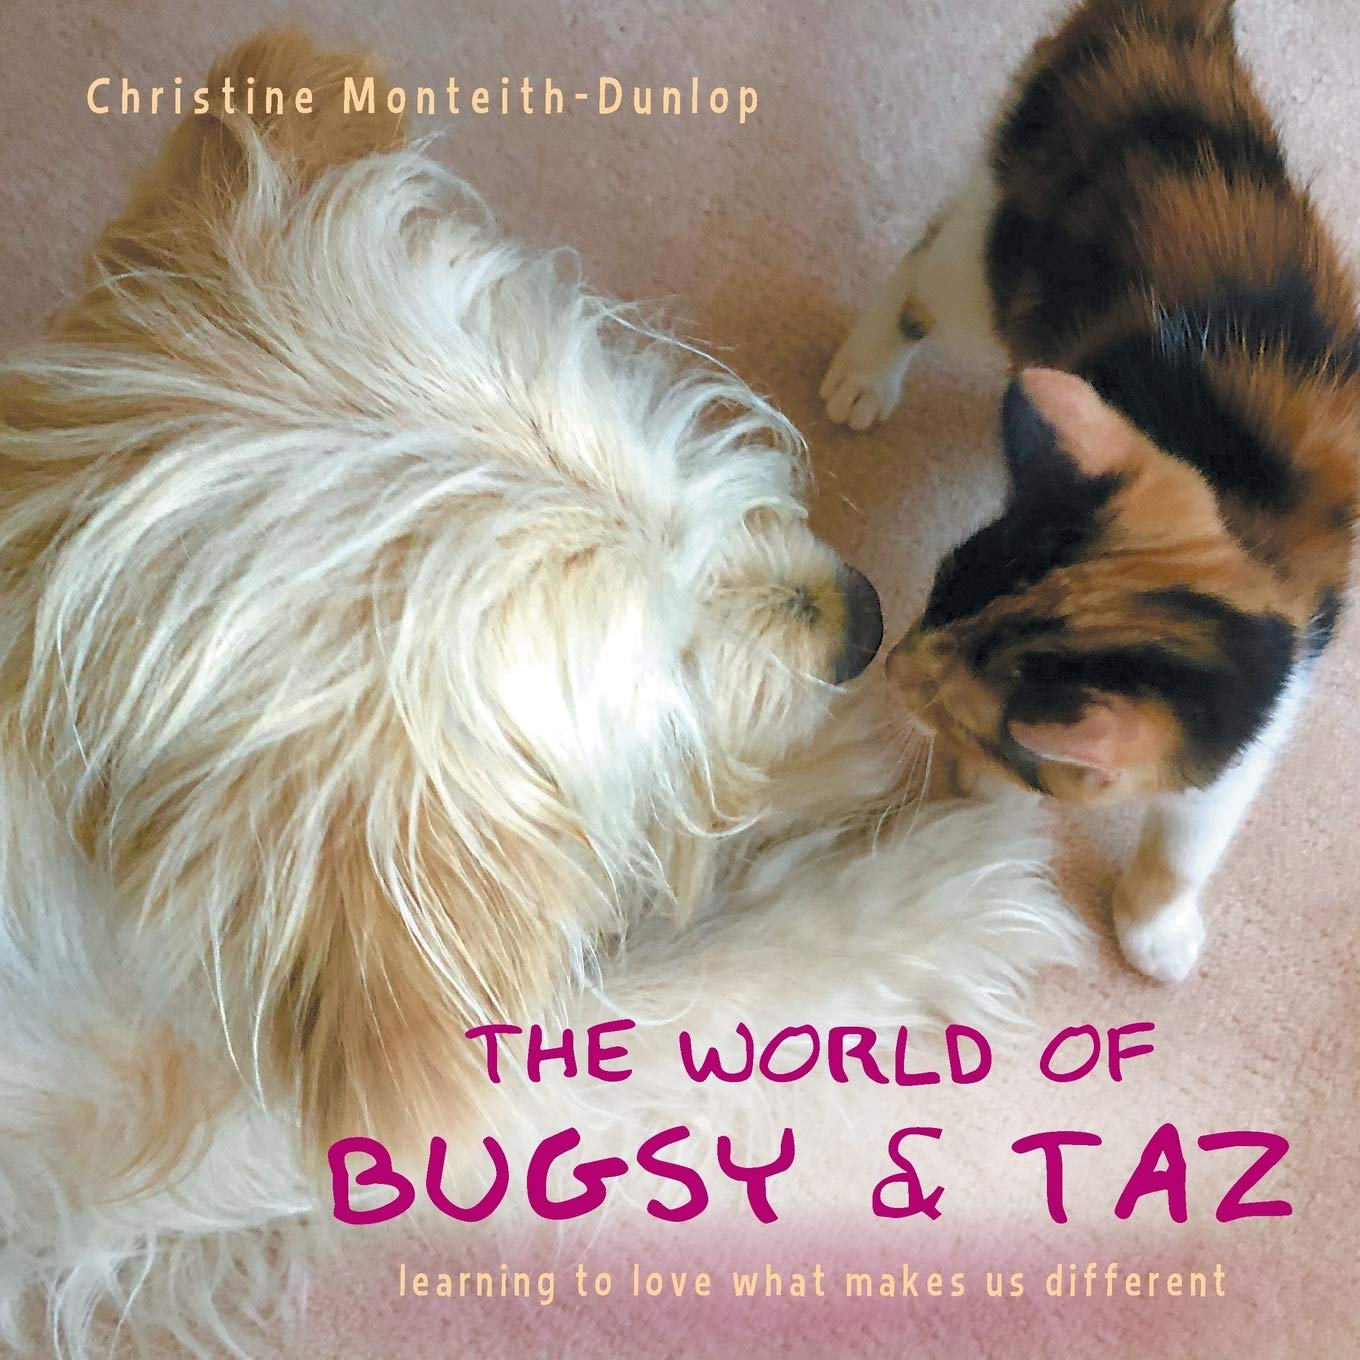 The World of Bugsy /& Taz learning to love what makes us different